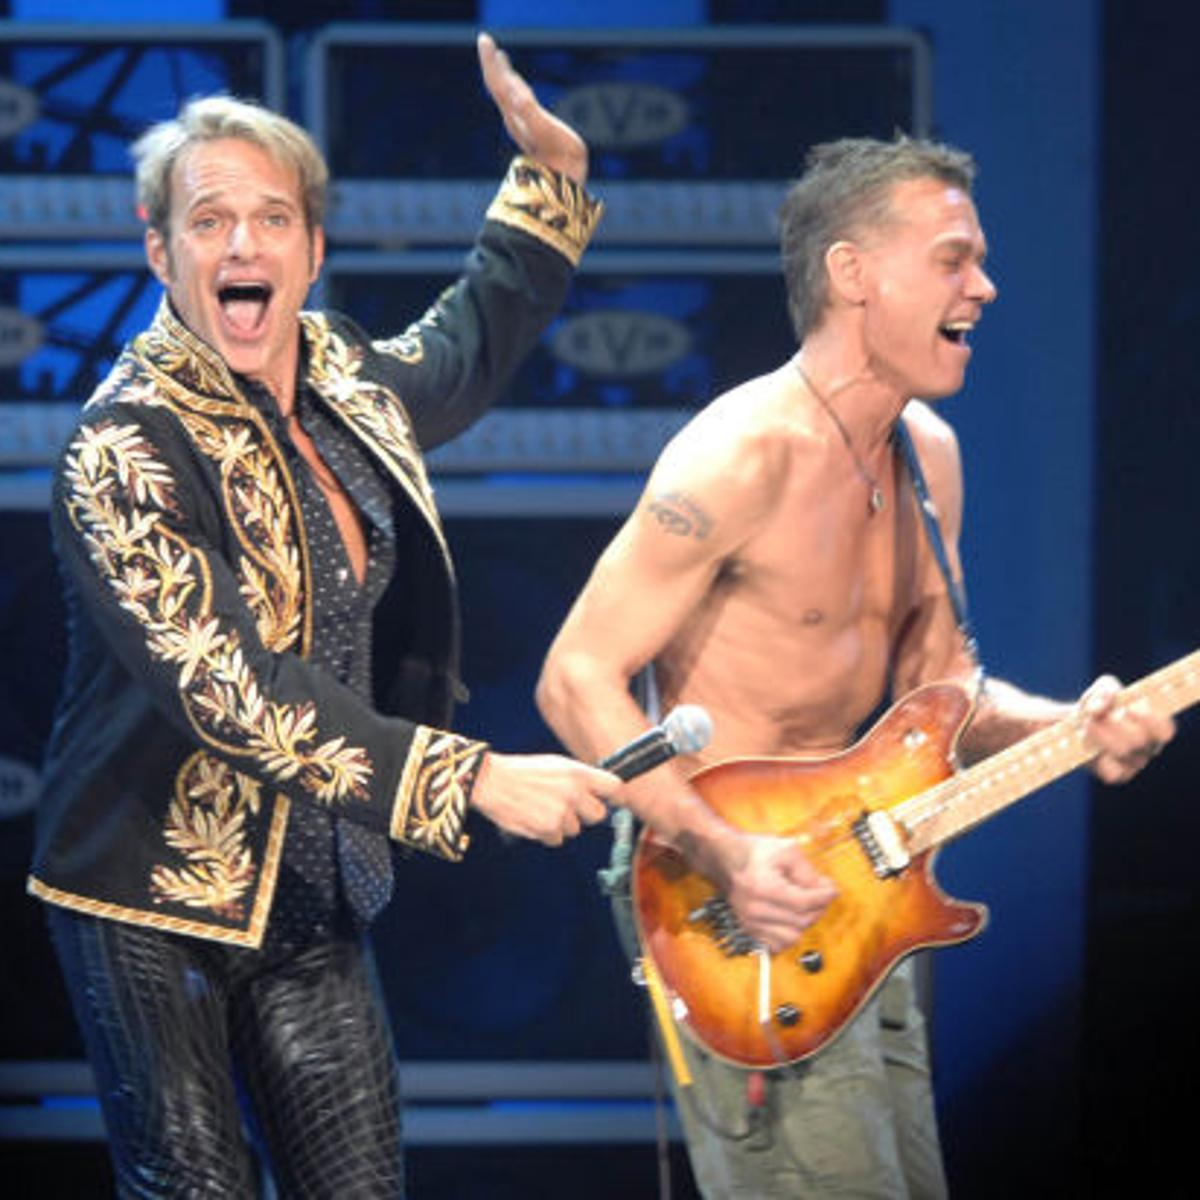 David Lee Roth Is On The Loose With Van Halen On Album And Tour Life Qconline Com